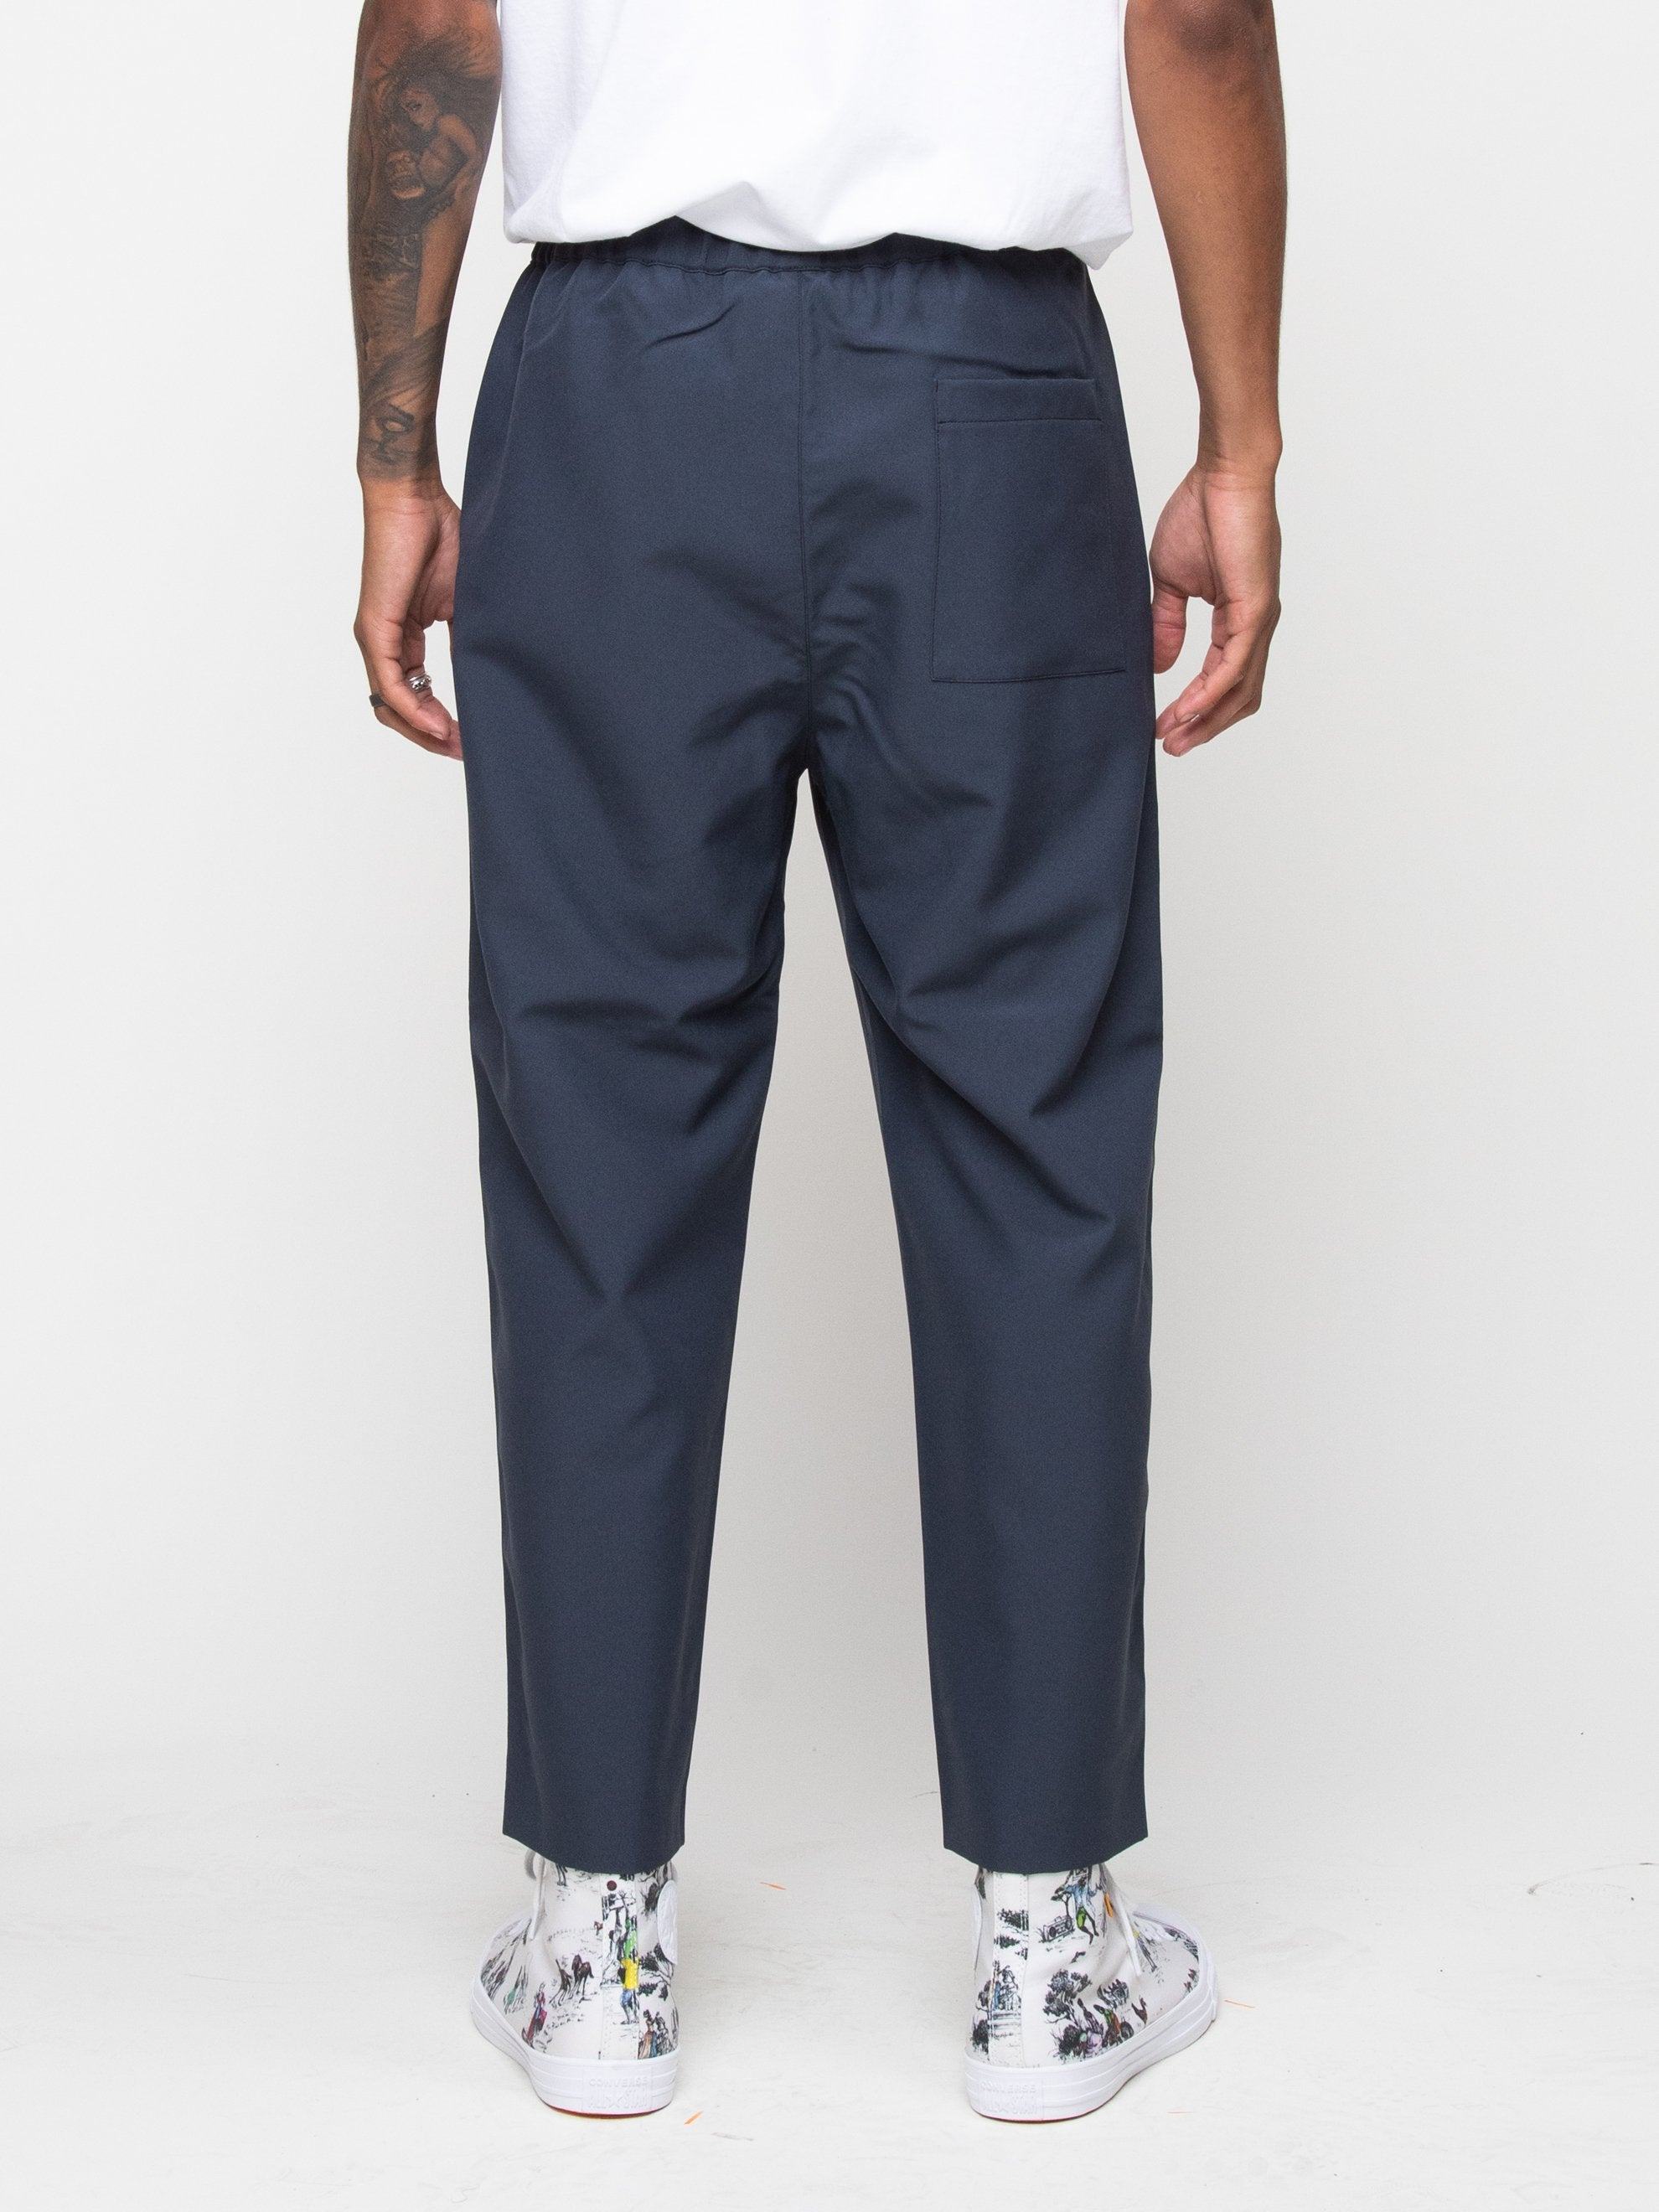 Charcoal Blue Drawcord Pant 5